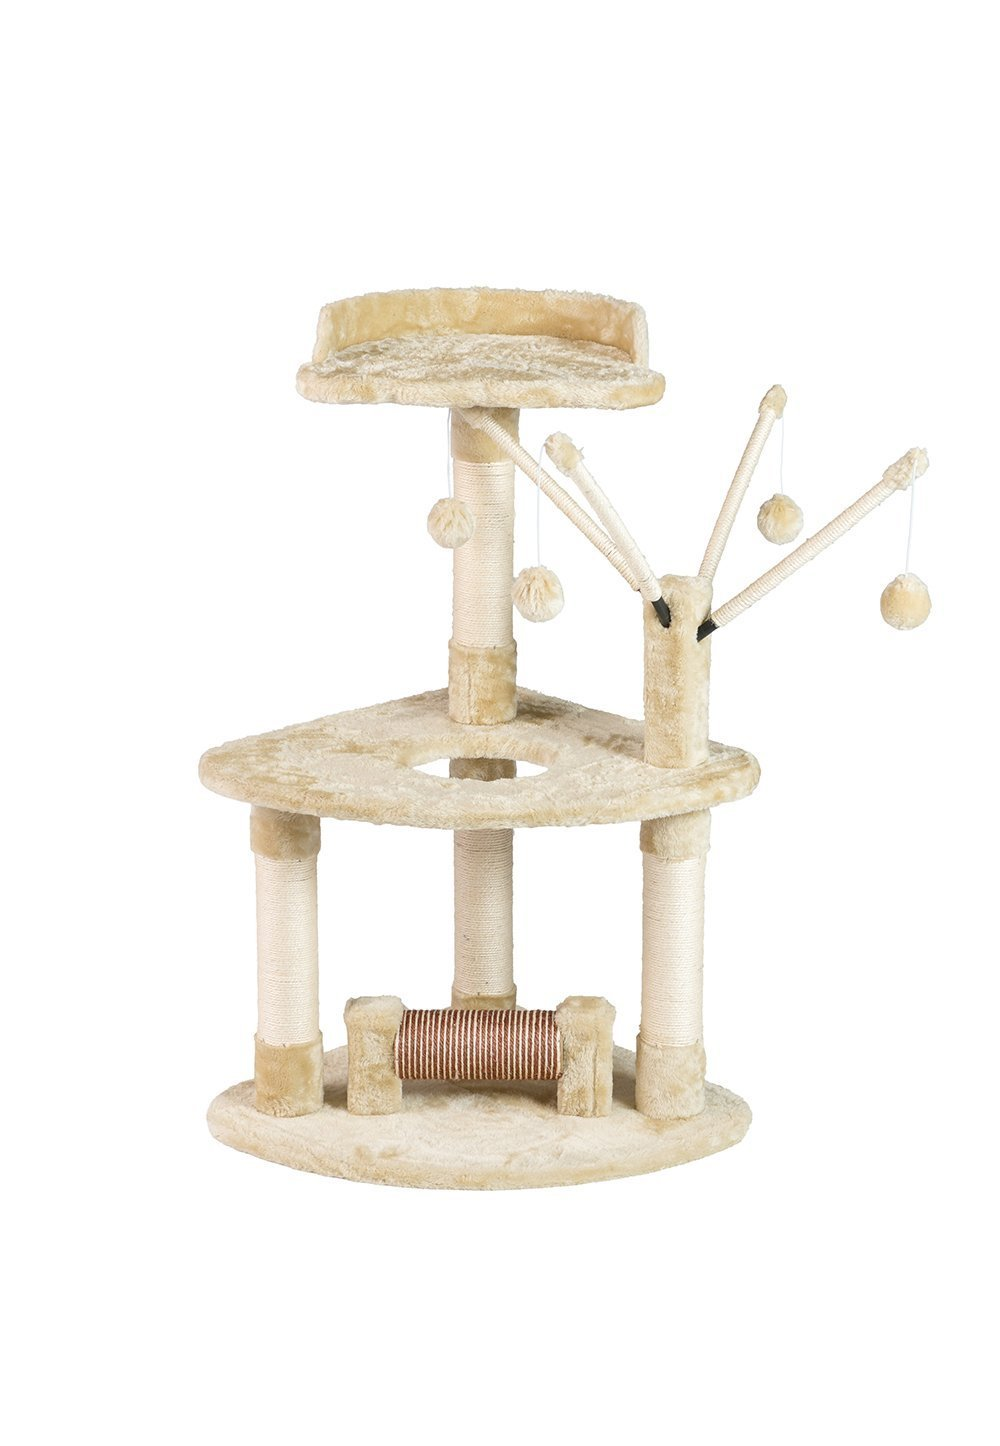 Buy-Hive Cat Tree Condo House Scratching Post Pet Kitten Play Tower w Hanging Toy by